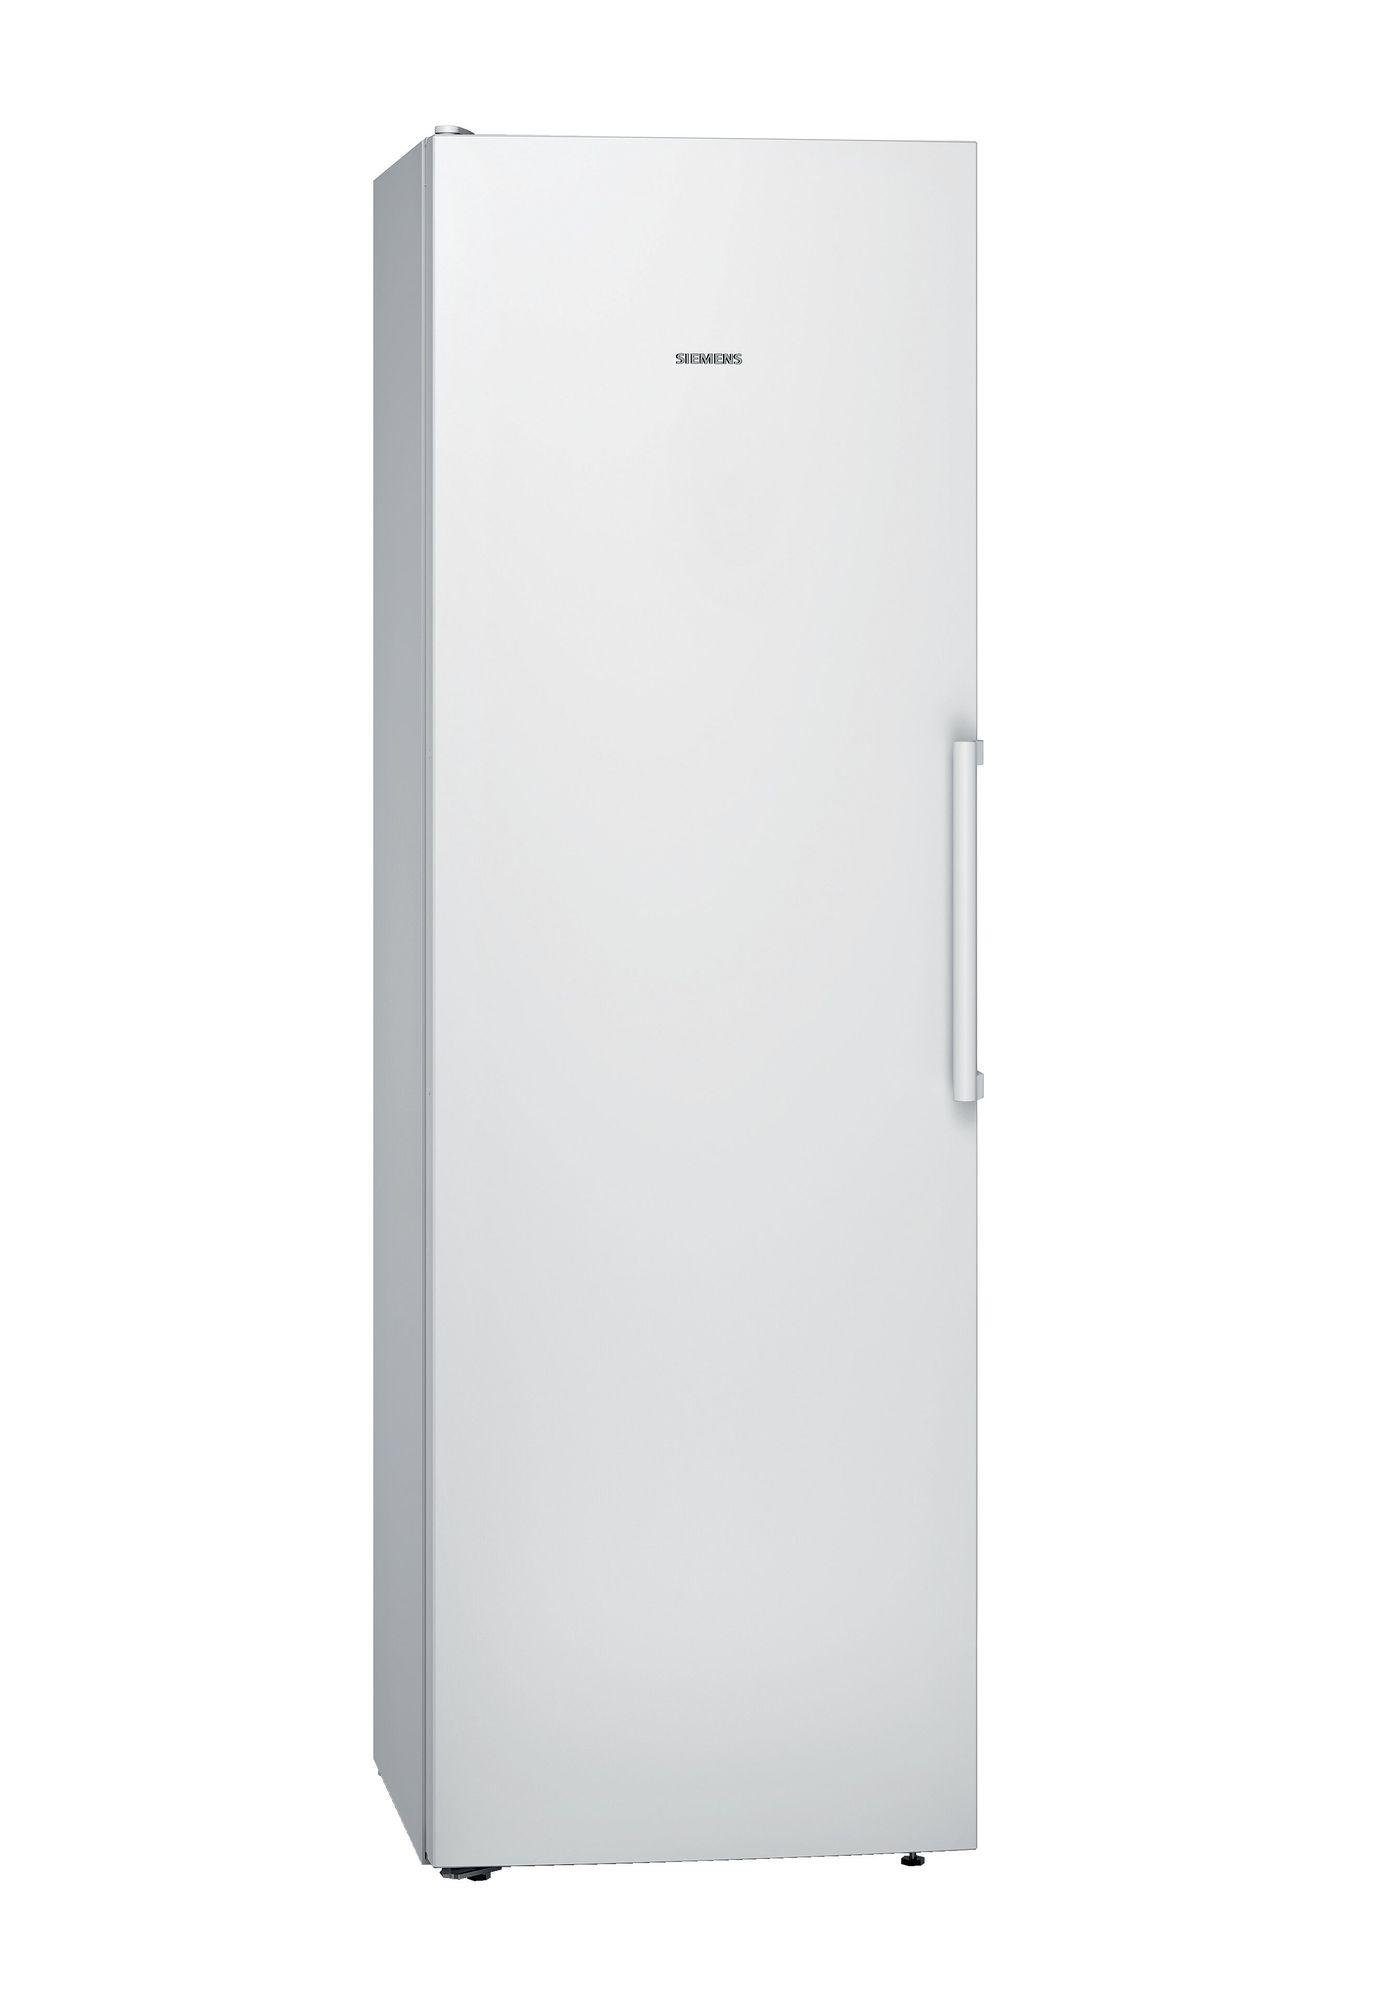 Image of iQ300 KS36VVWEP 346 Litre Single Door Fridge | White